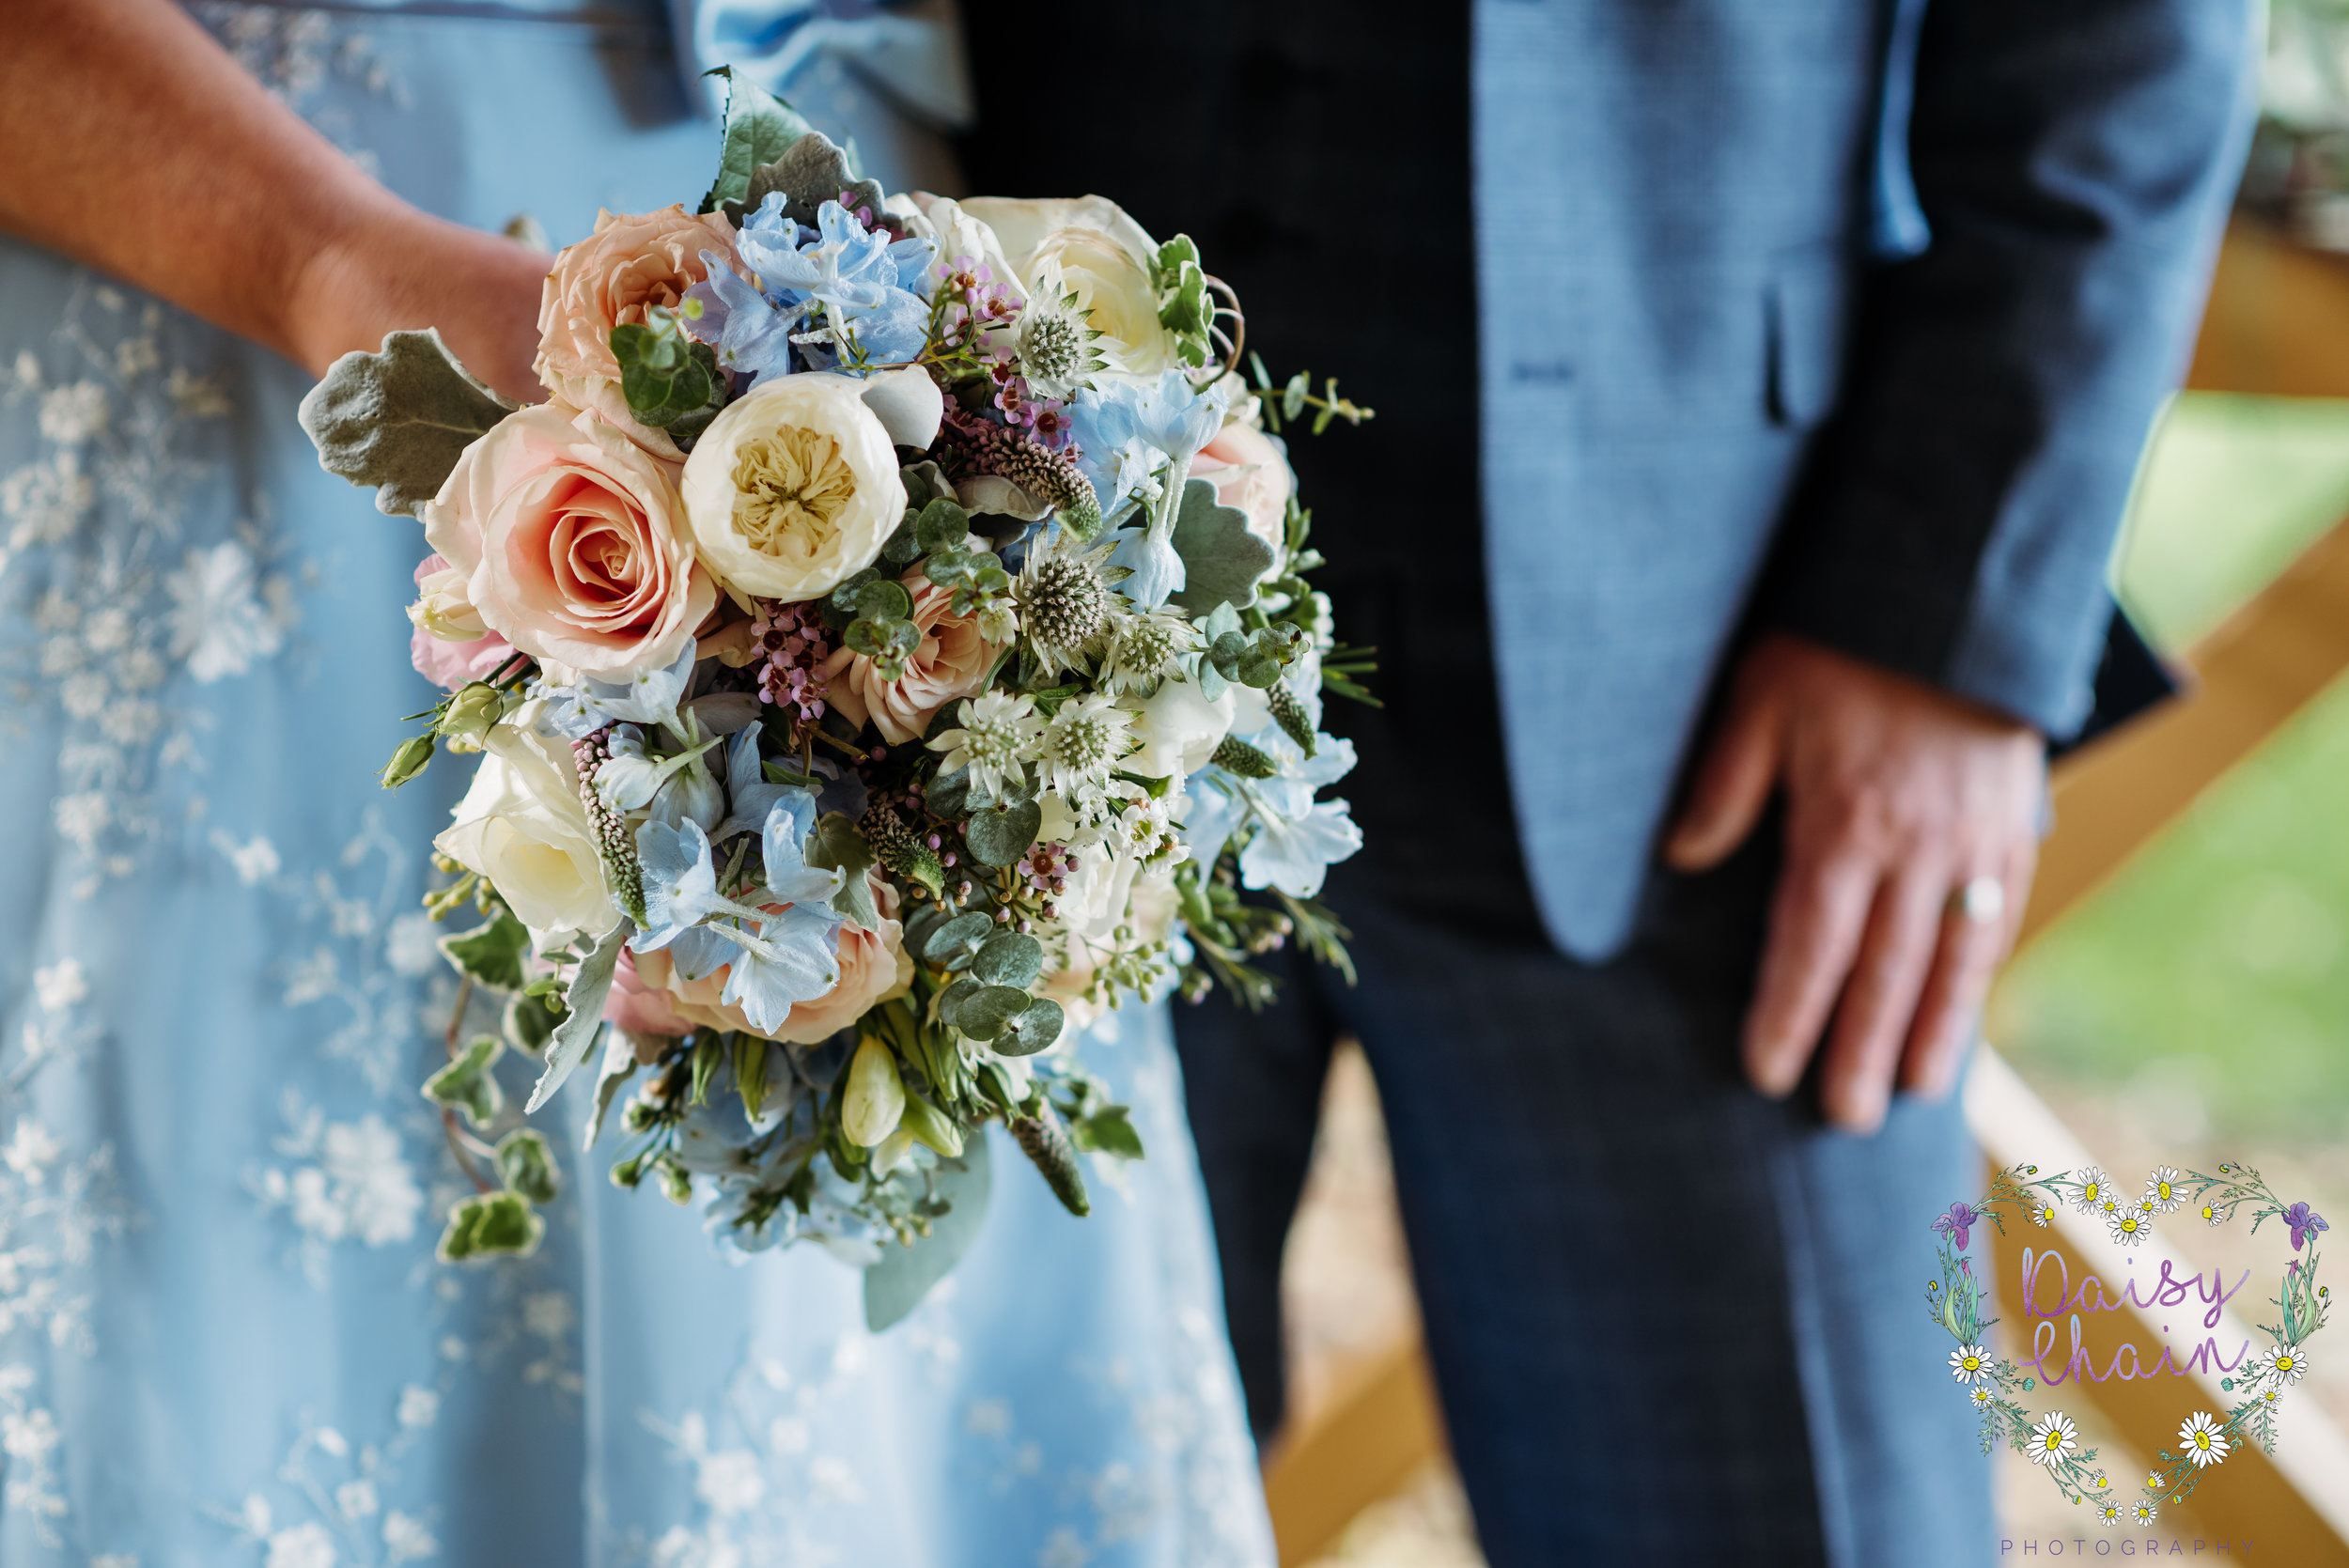 Wedding bouquet - something blue